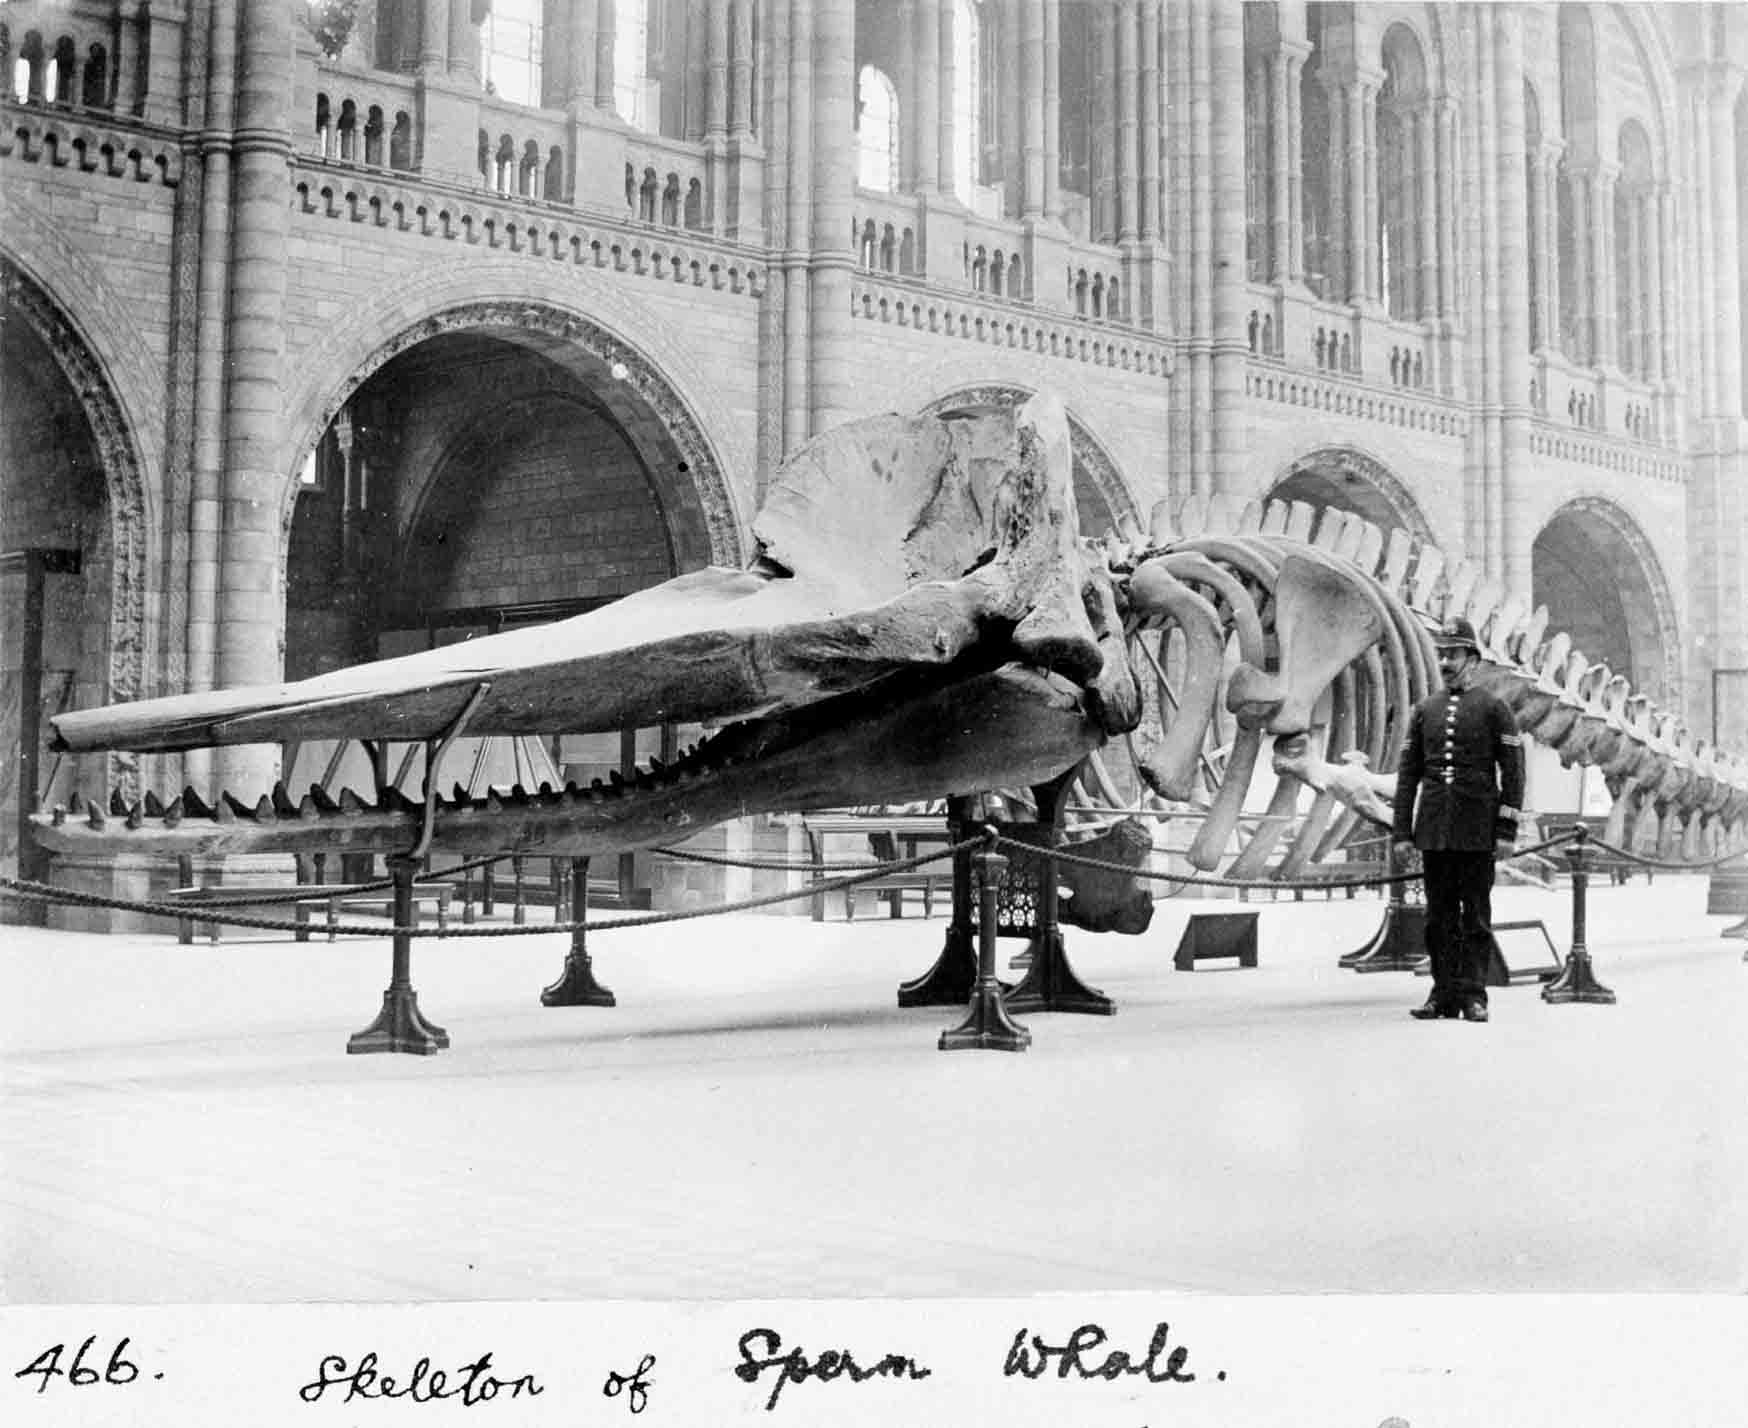 A Sperm whale skeleton occupied Central Hall in 1901. © The Trustees of the Natural History Museum, London